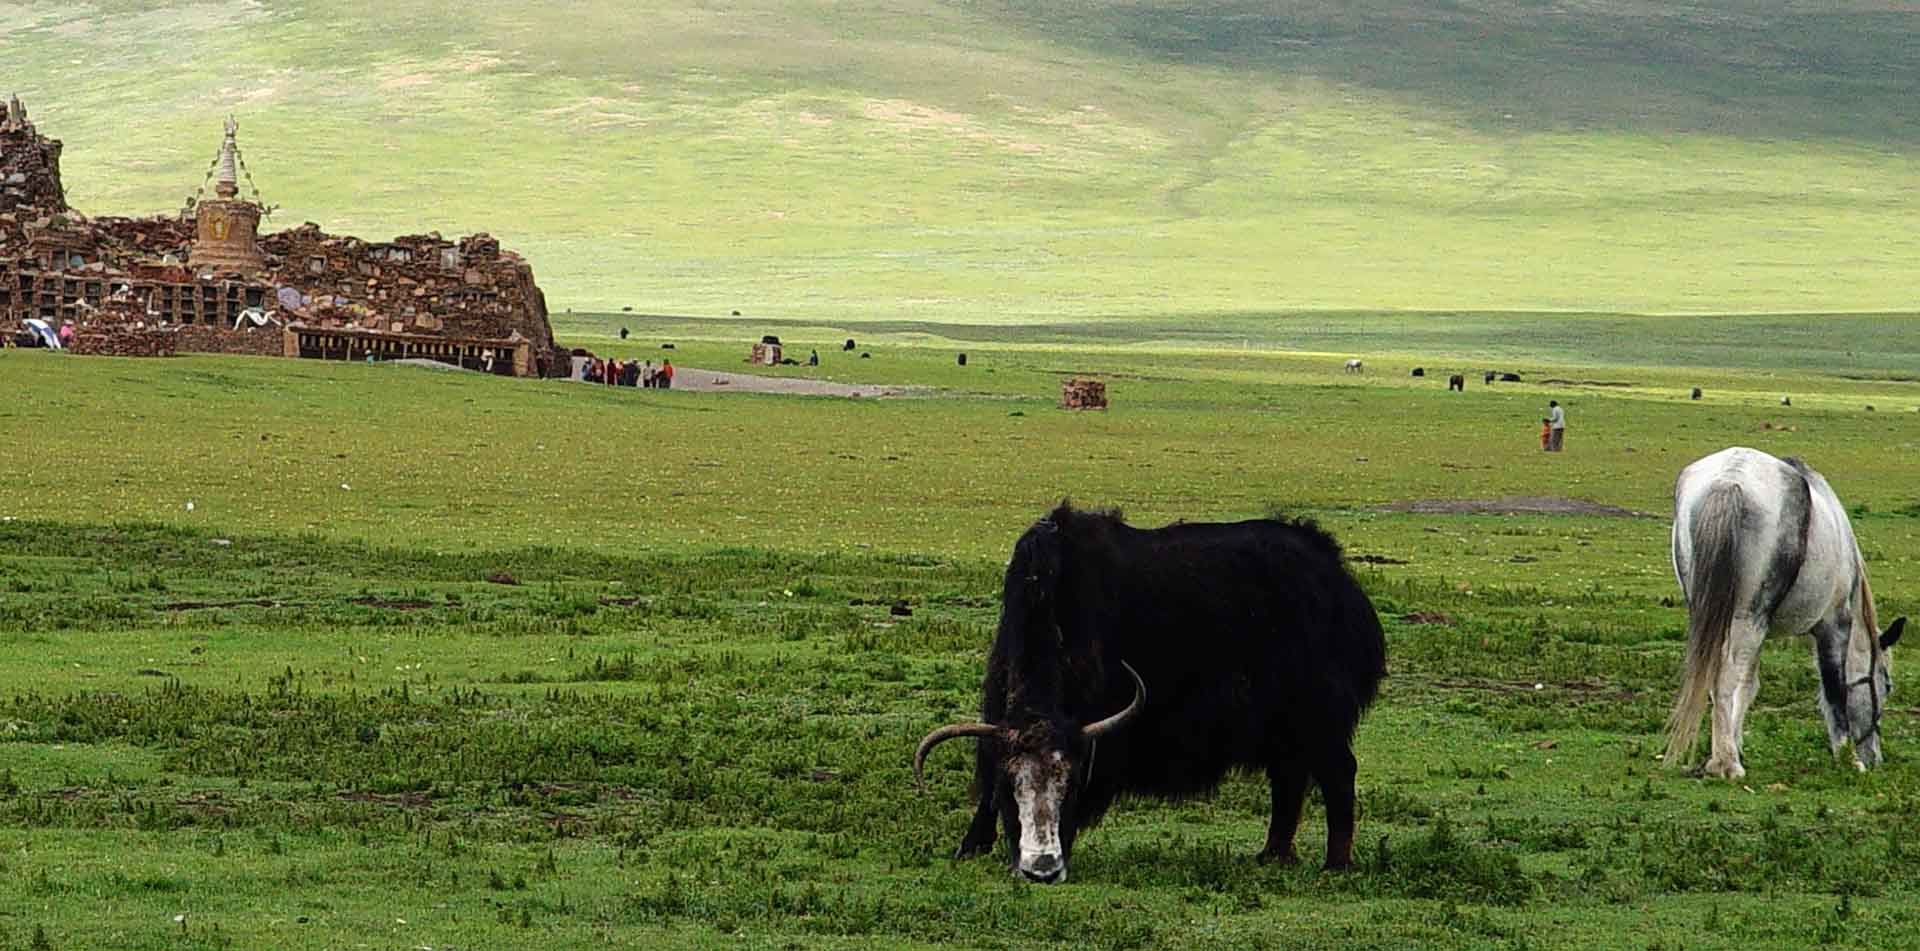 Countryside of China